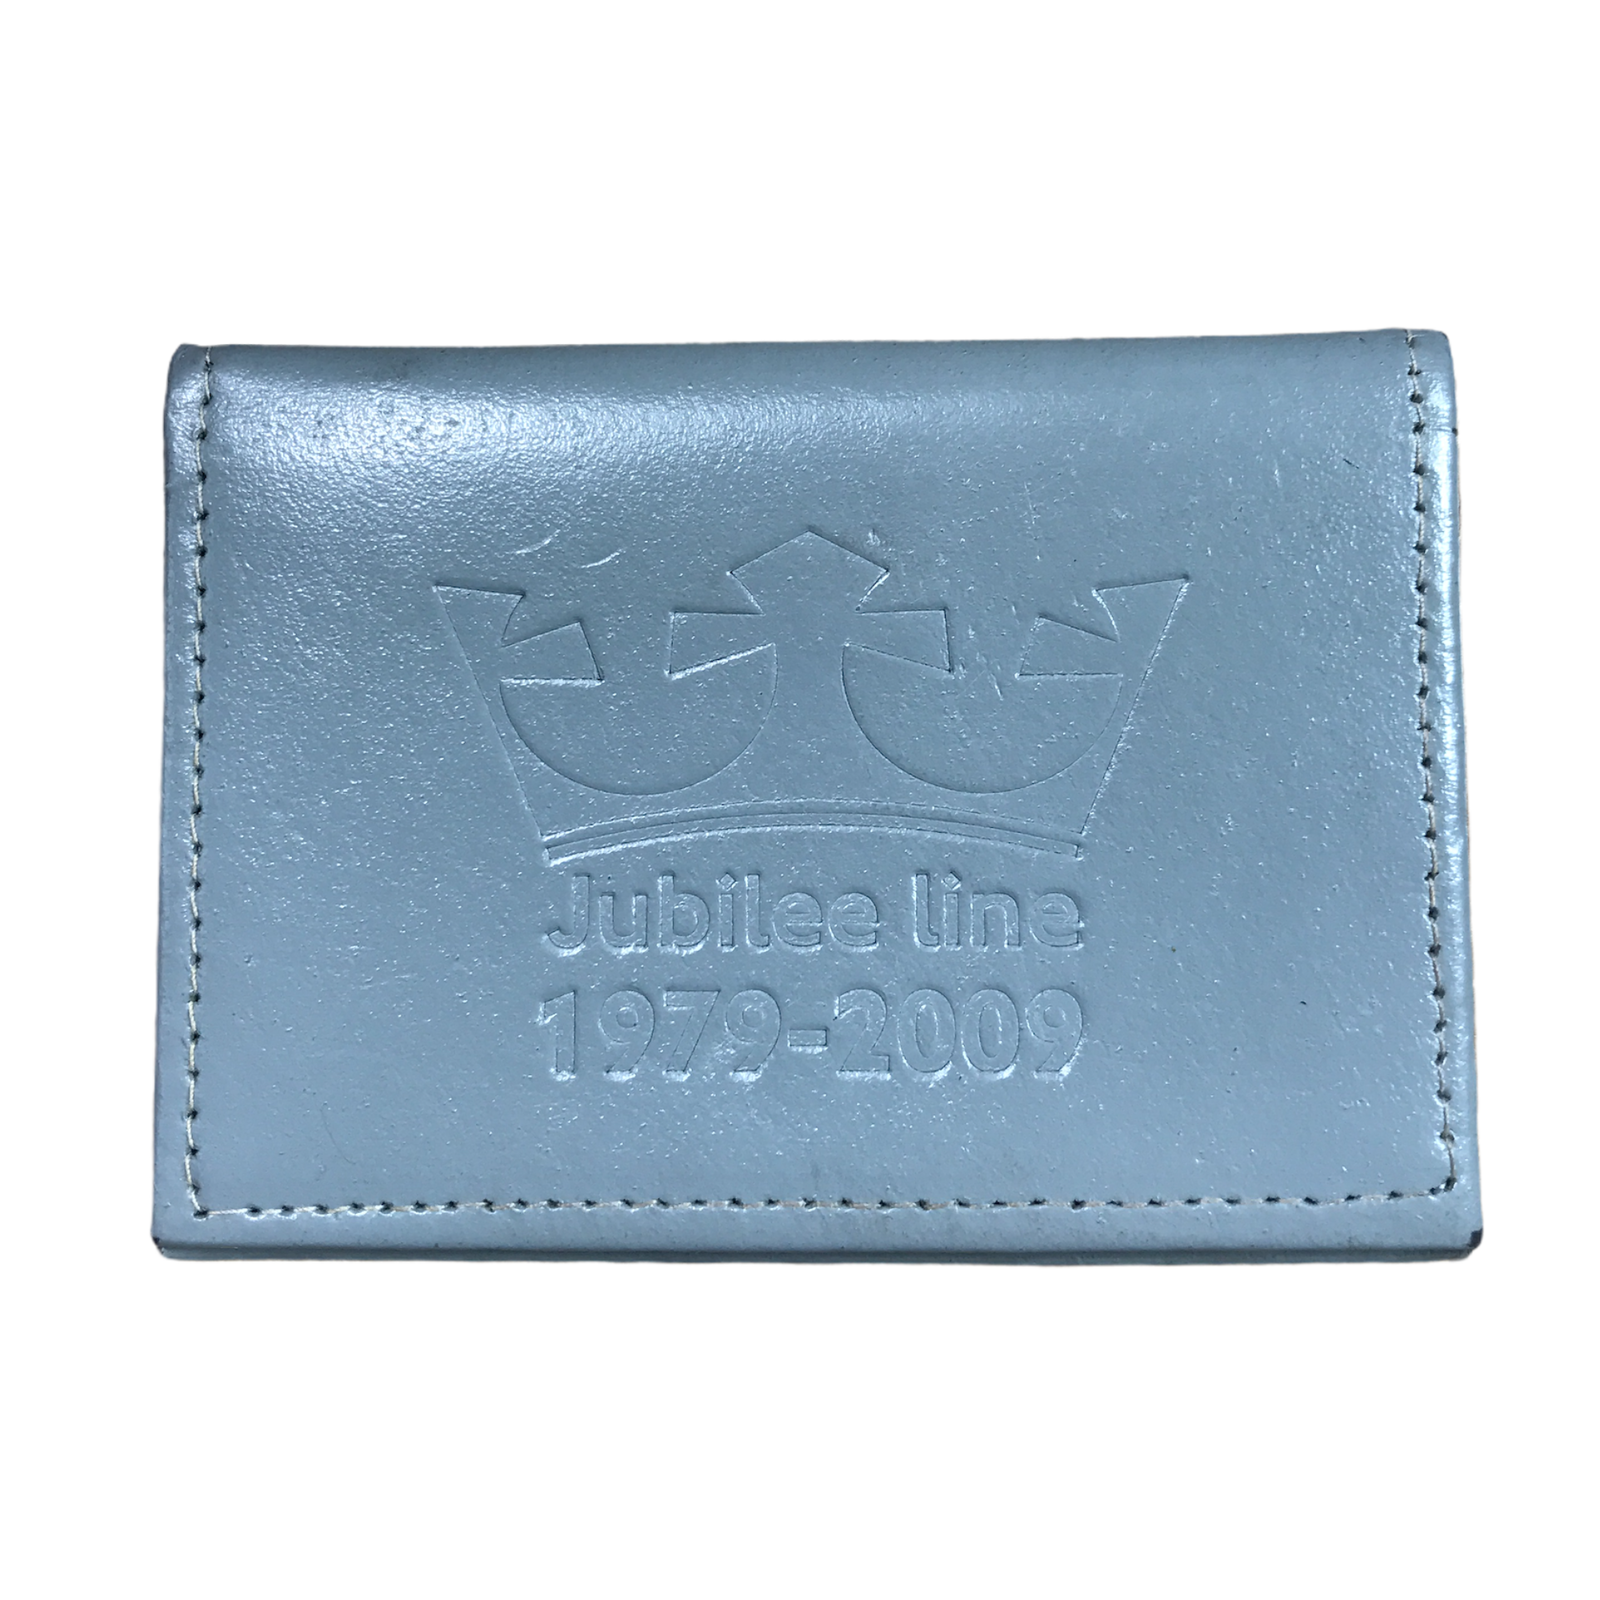 Jubilee Line 1979-2009 Commemorative Train Ticket Travel Card Holder Collectible